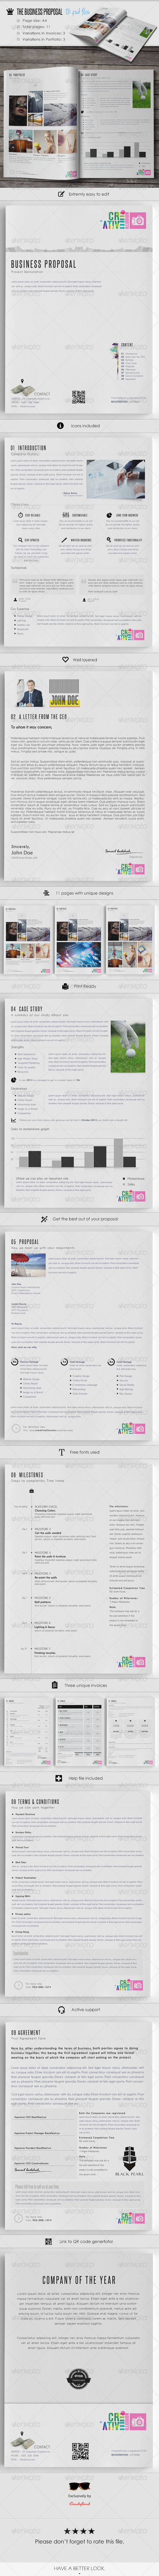 GraphicRiver The Business Proposal 7163568